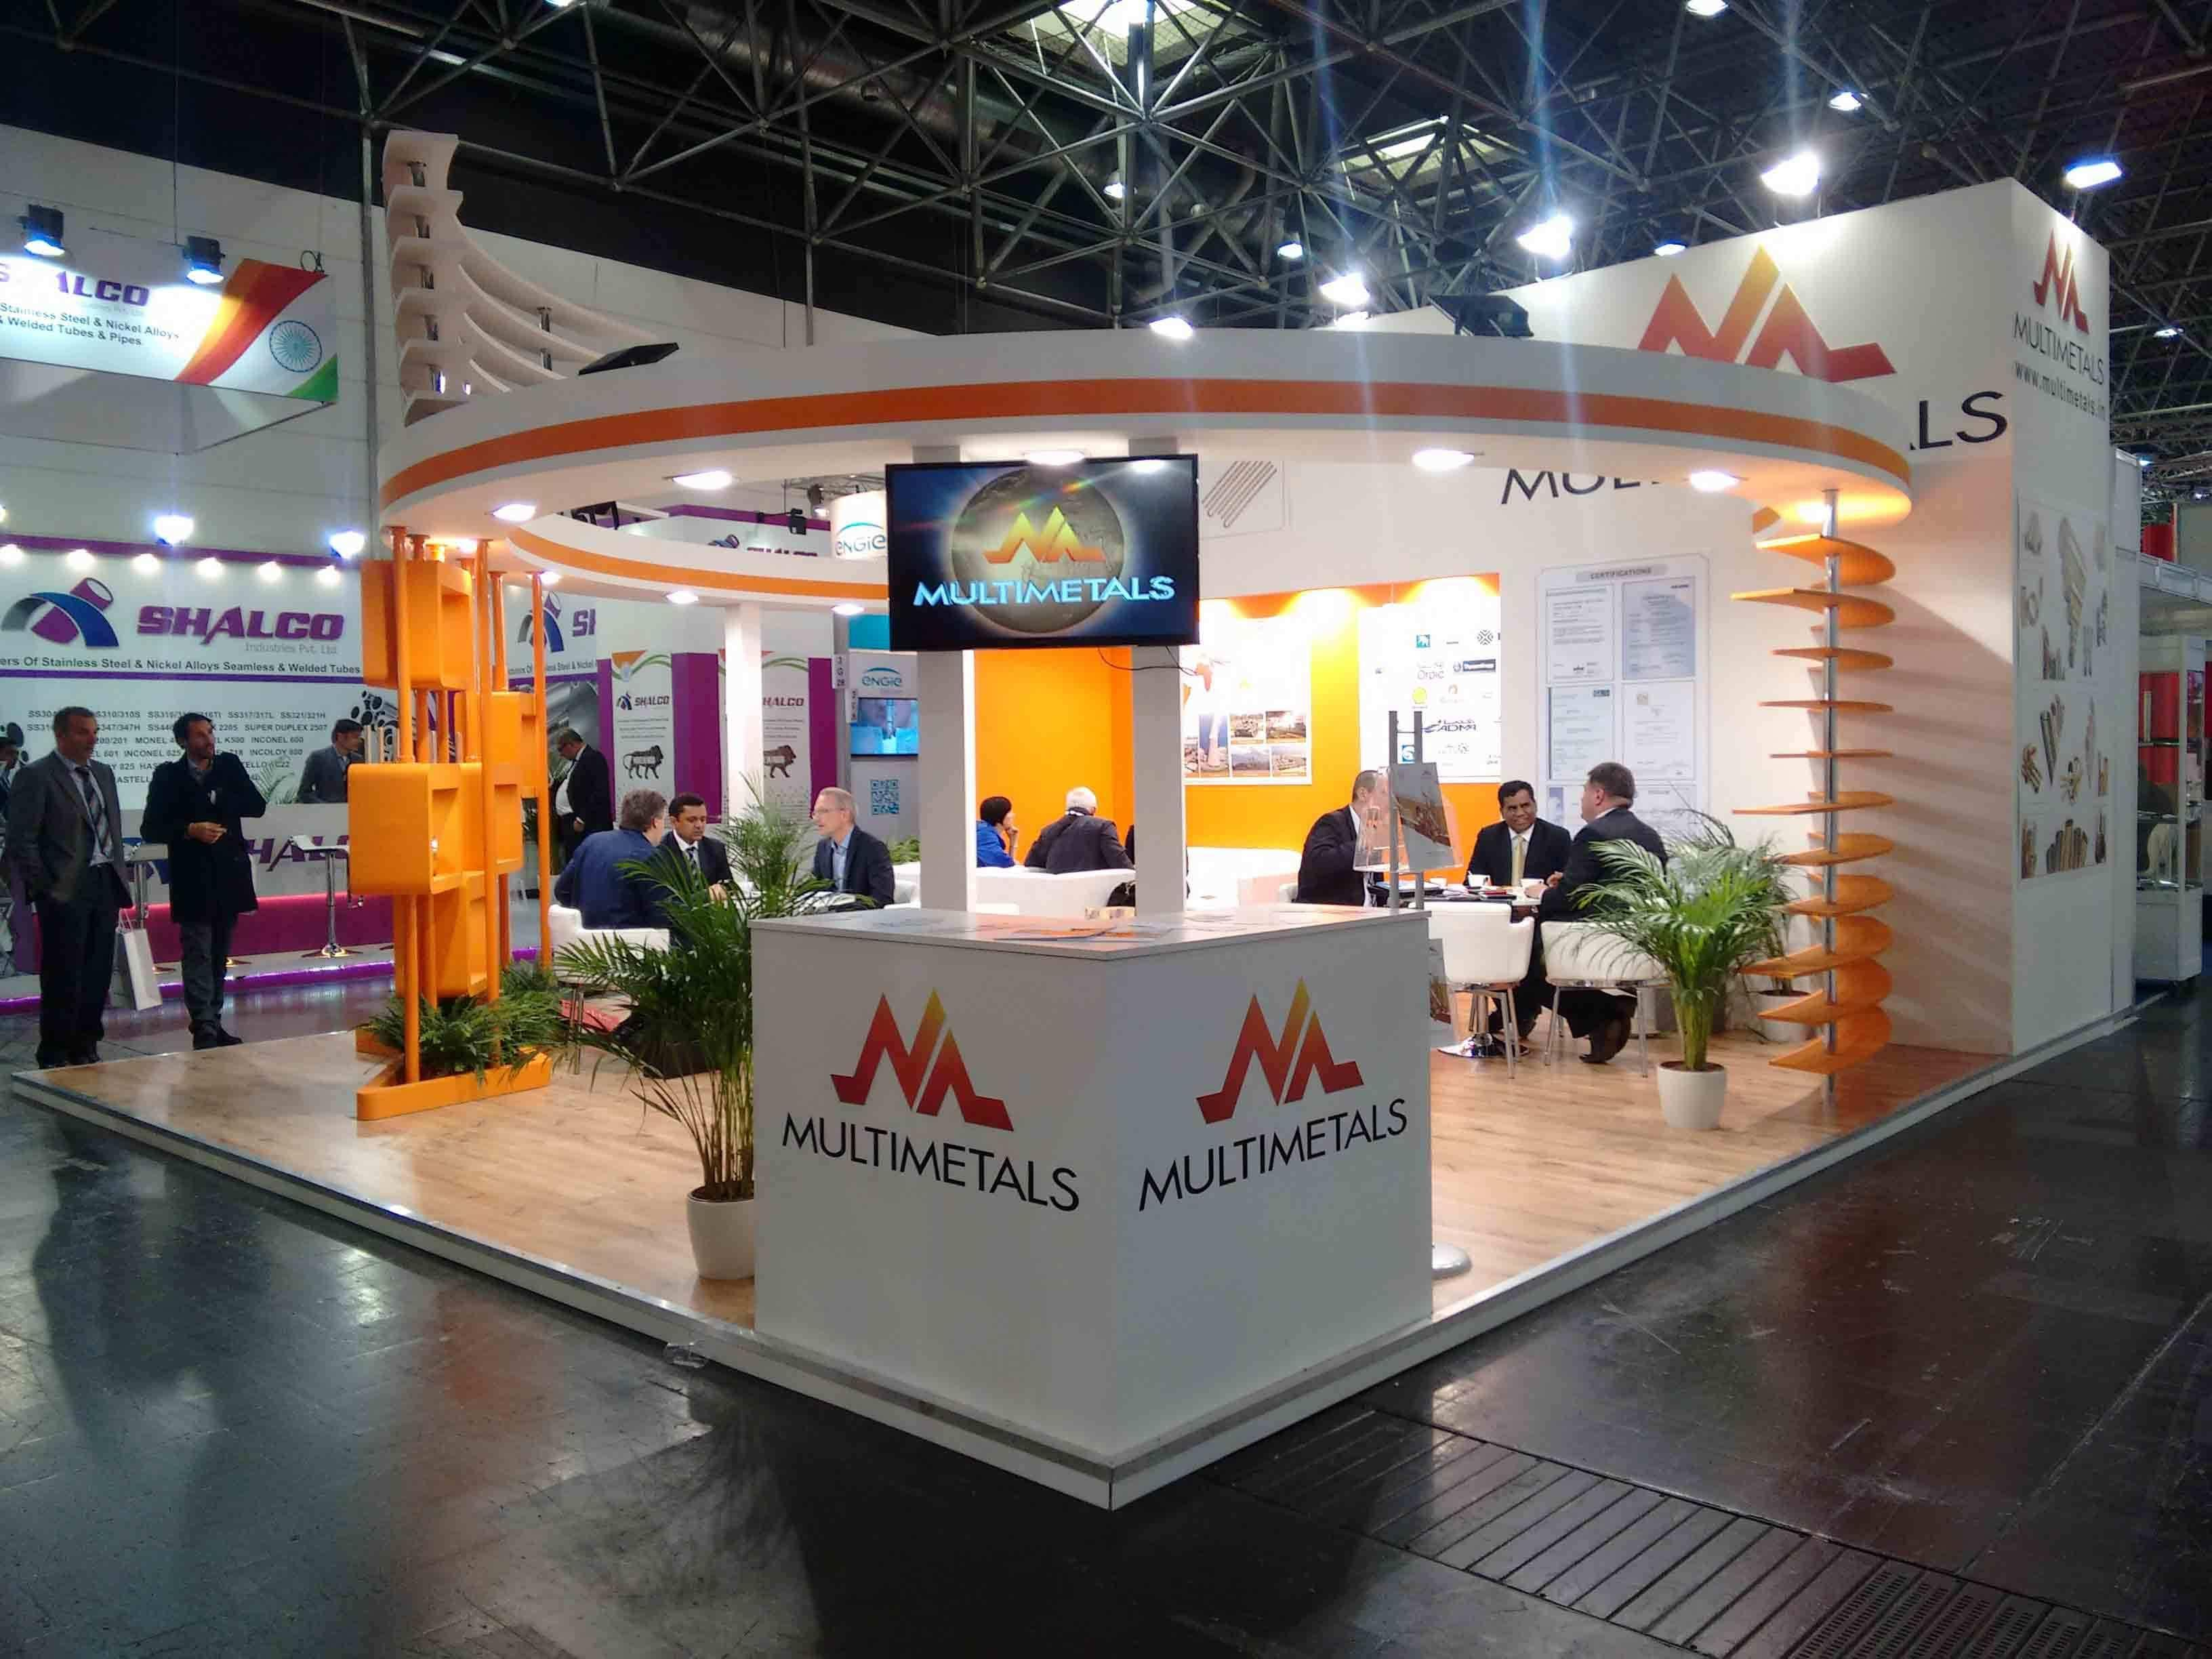 Exhibition Stand Builders In Germany : The bespoke trade show stand designed for multimetals at